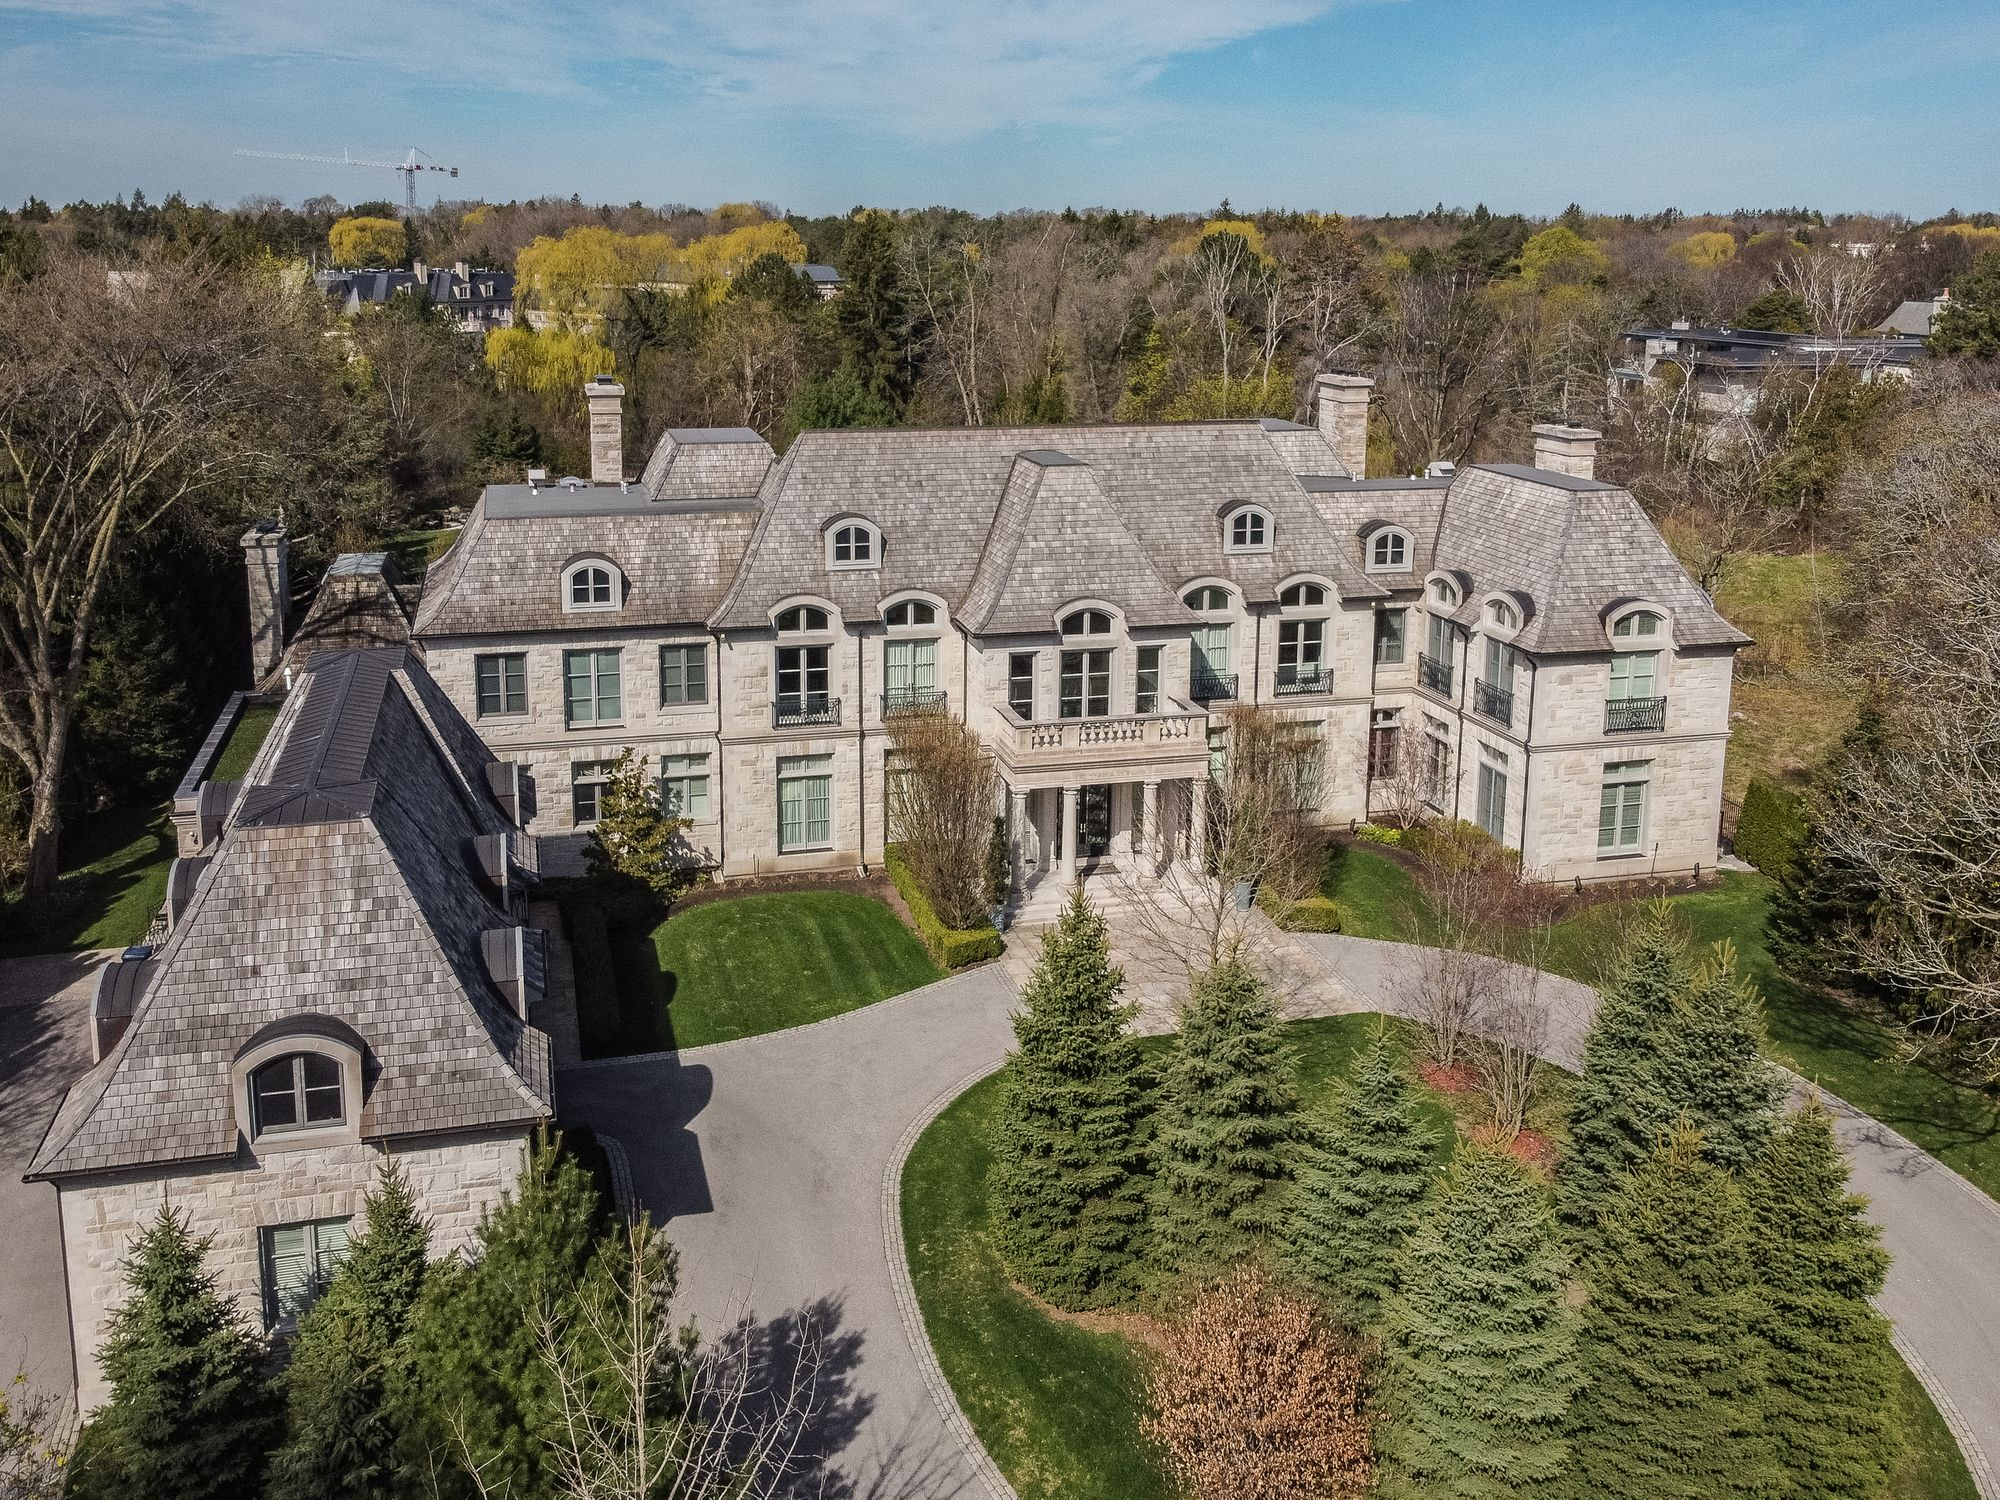 Gated French Provincial Estate Palatial Mansion Designed And Built By World Renowned Joe Brennan Mansions Mansions For Sale Luxury Real Estate 20 bedroom mansion for sale